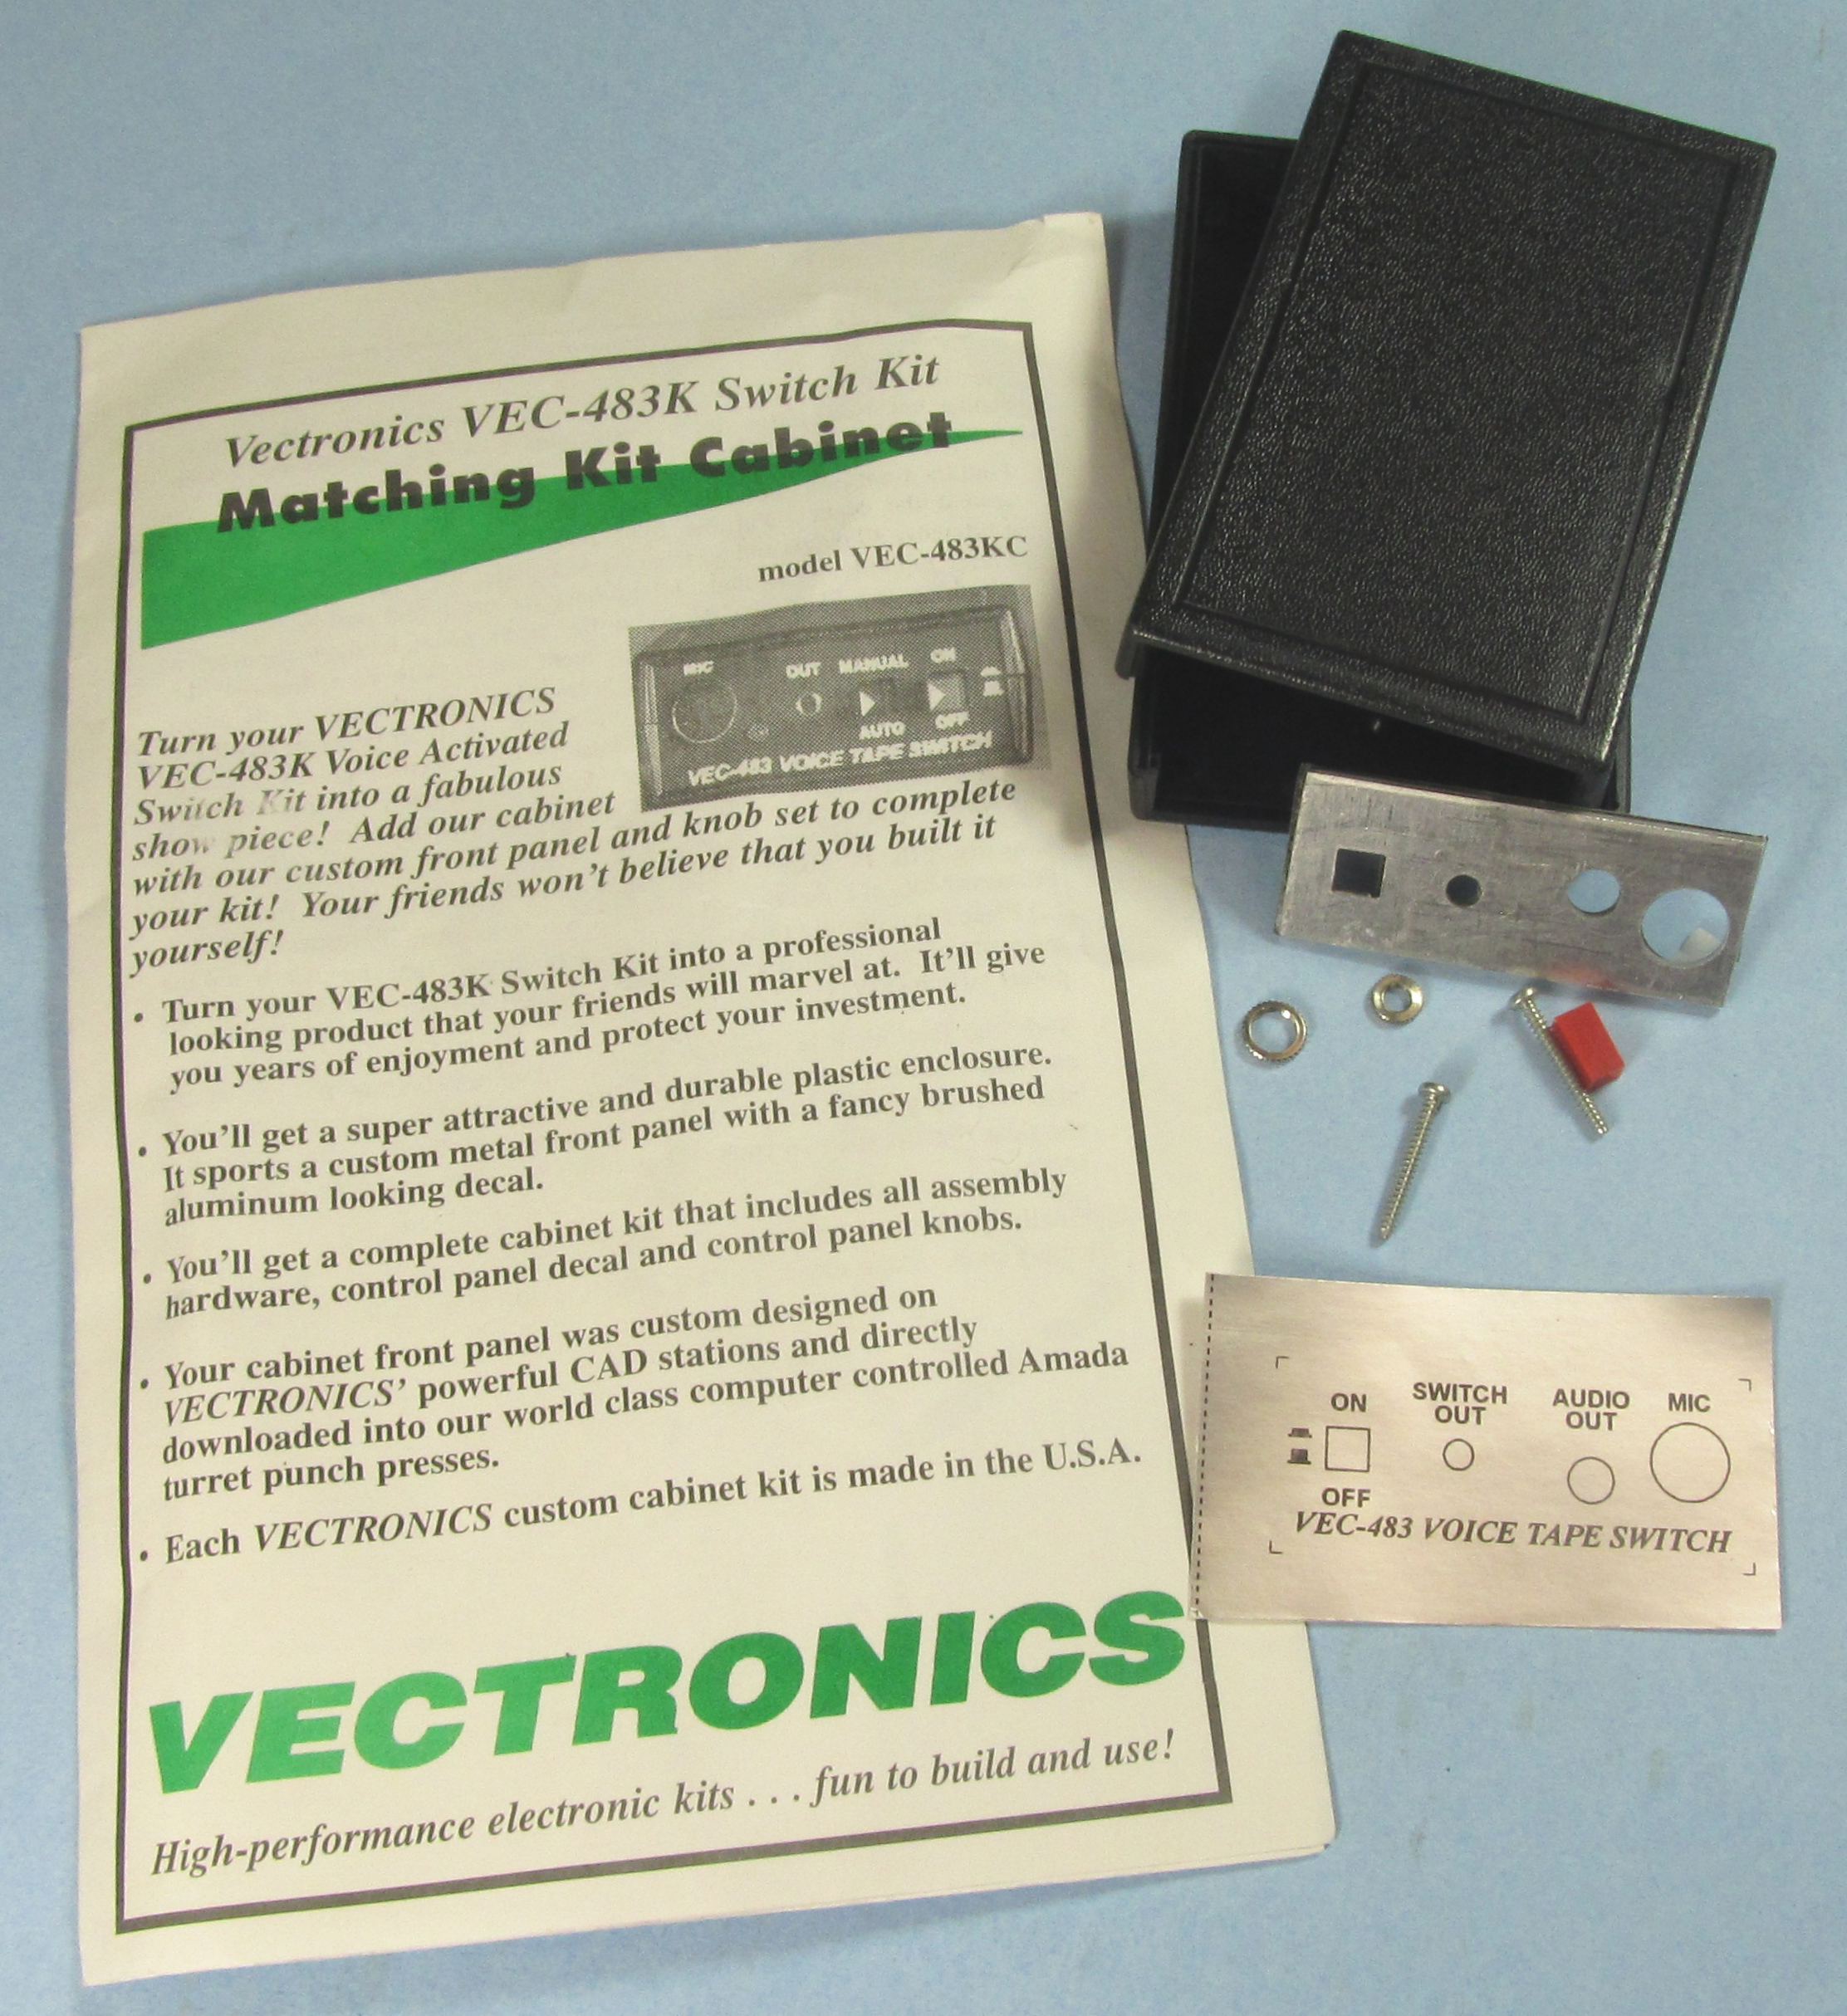 VEC-483KC Vectronics Metal Case for VEC-483K